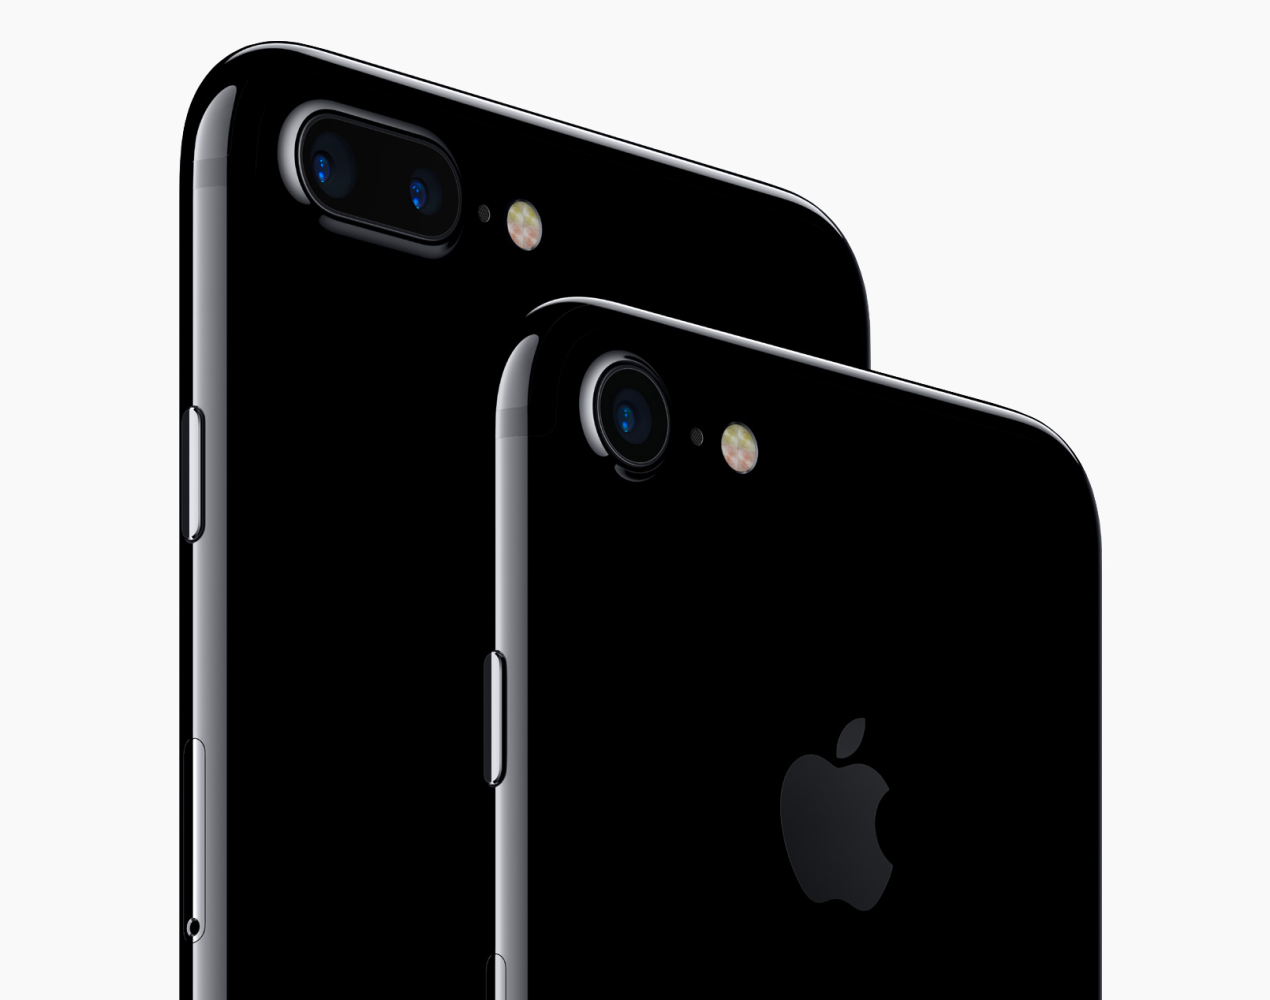 iphone-7-06.png